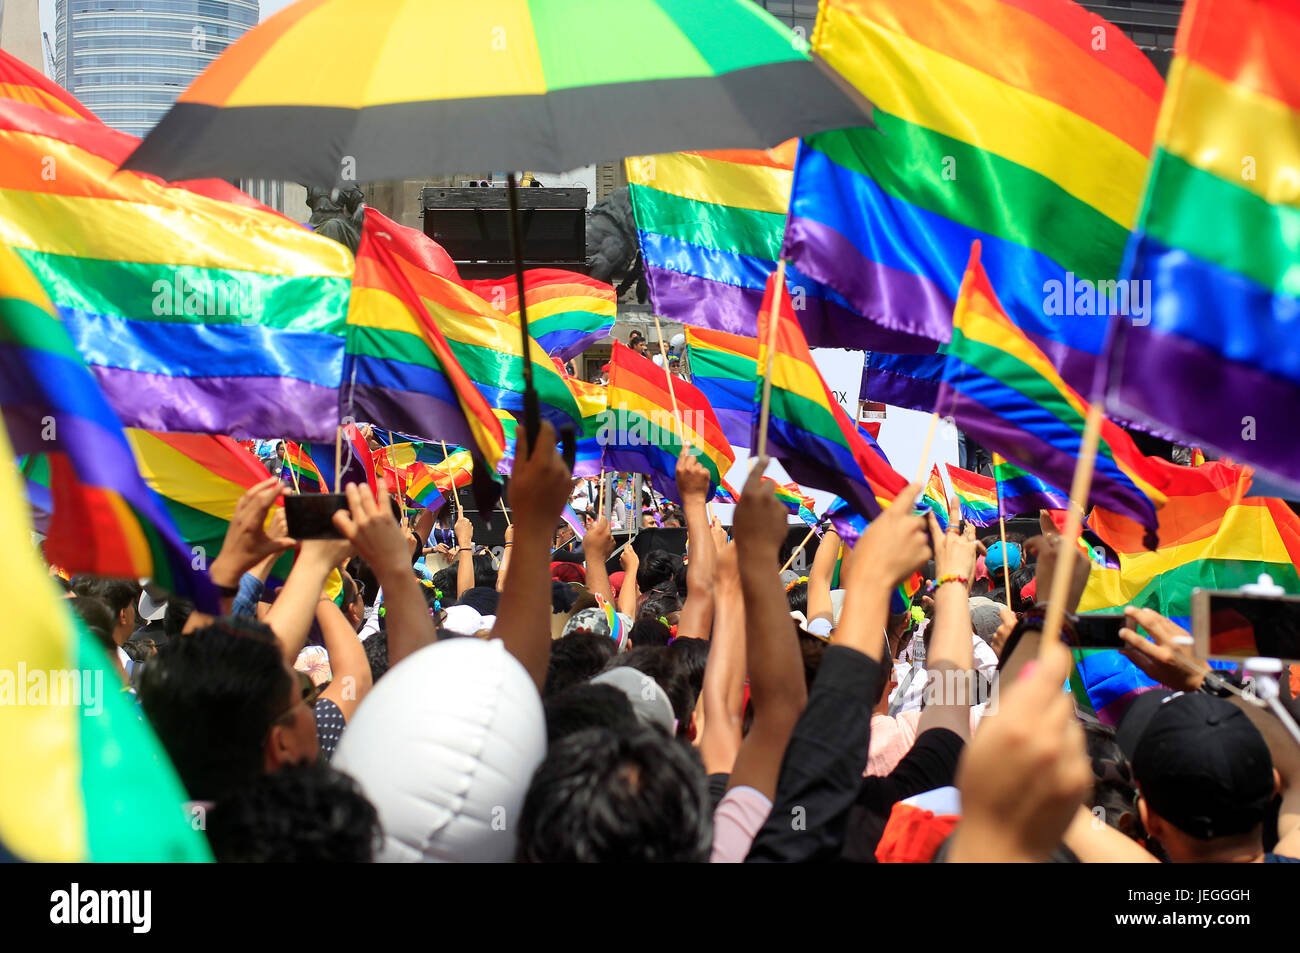 People Take Part In The 39th Gay Pride Parade In Mexico City Capital Of Mexico On June 24 2017 Credit Str Xinhua Alamy Live News